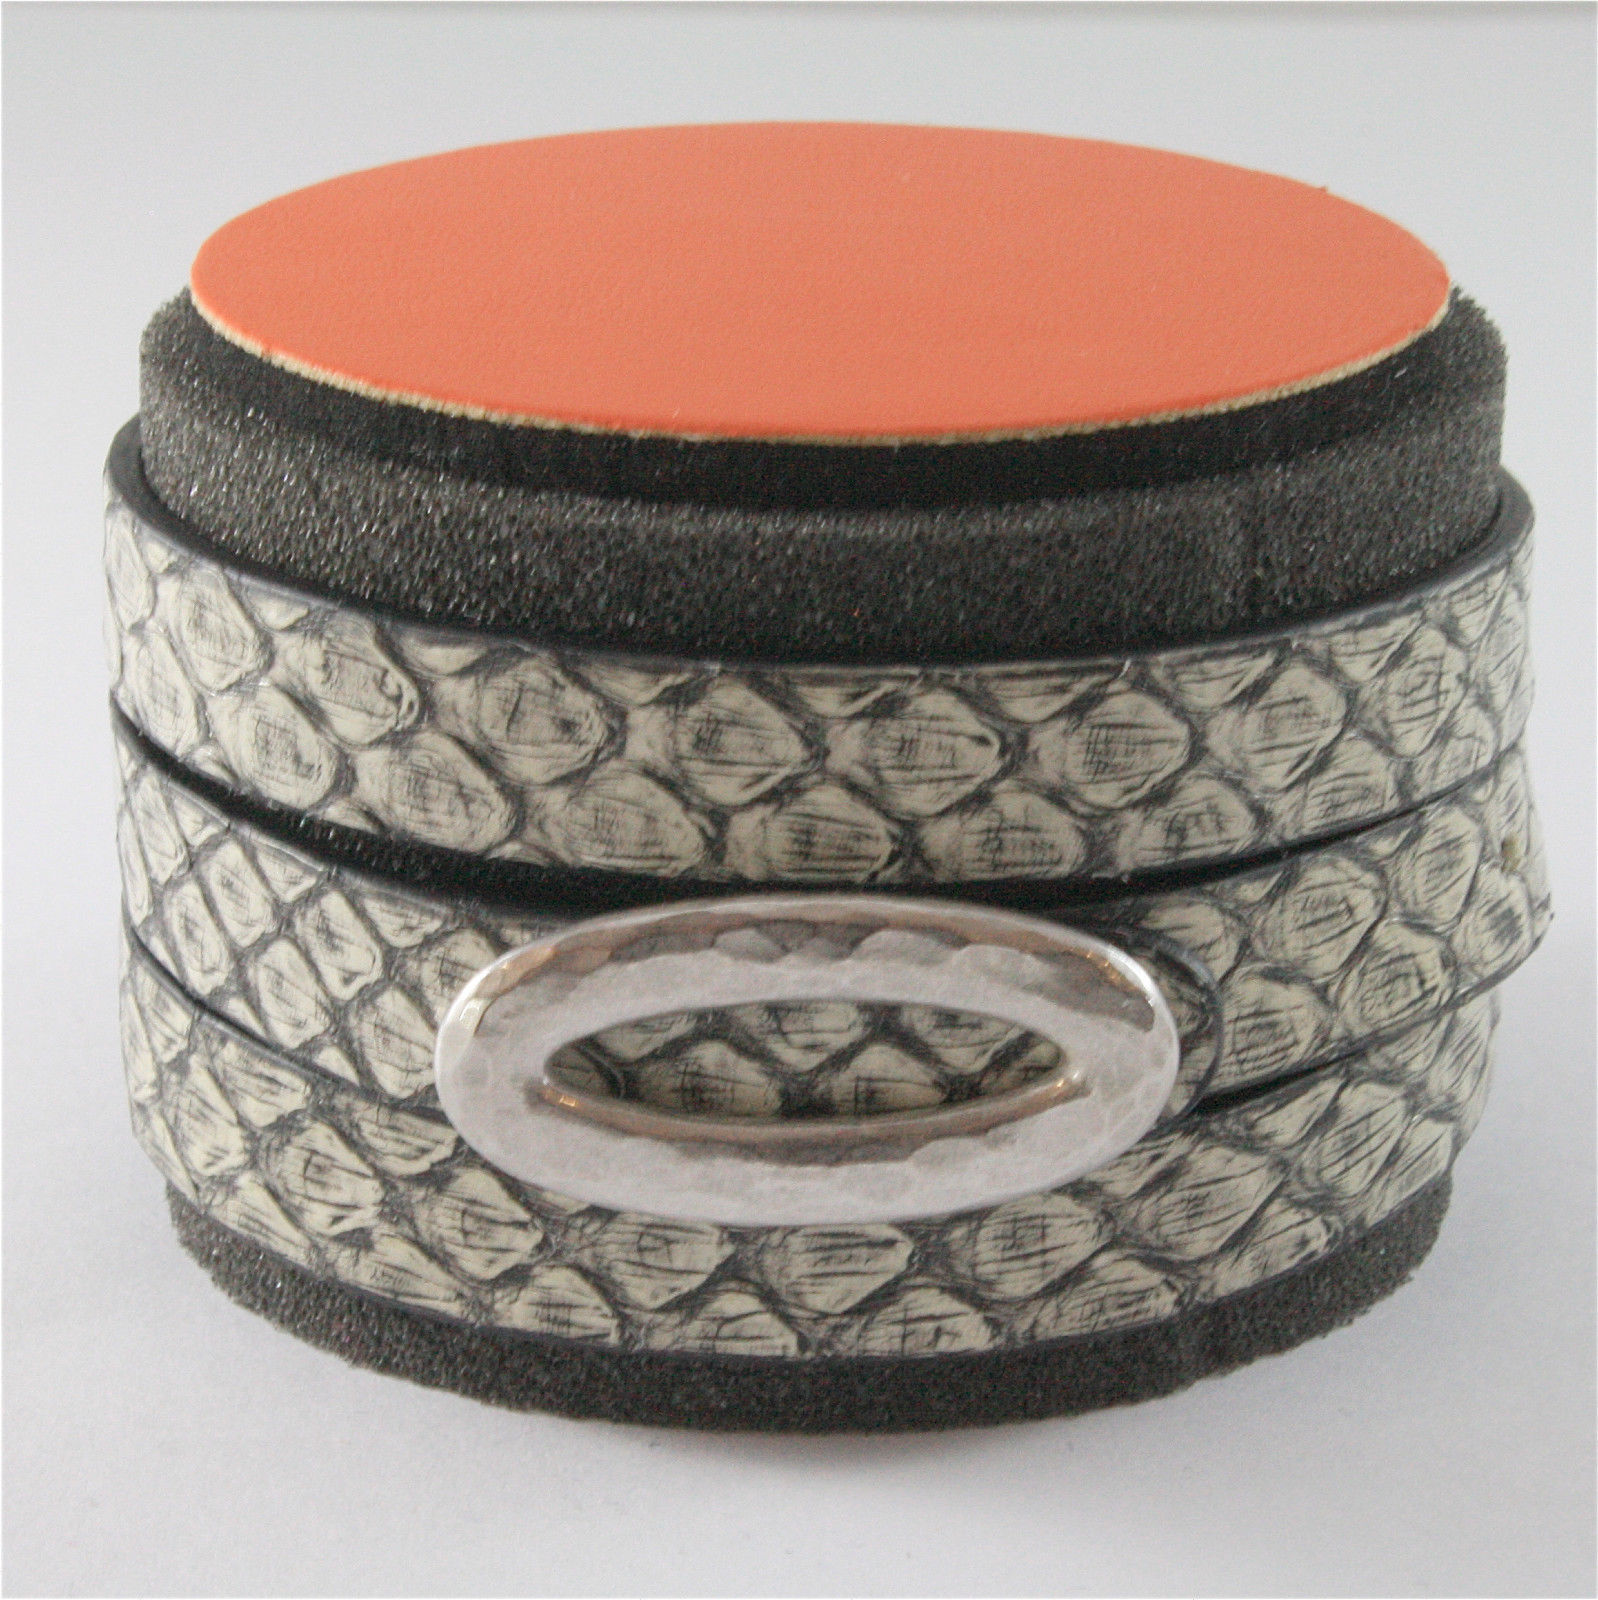 EDGY GREY PYTHON LEATHER BRACELET WITH 925 SILVER HAMMERED OVAL RHODIUM PLATED